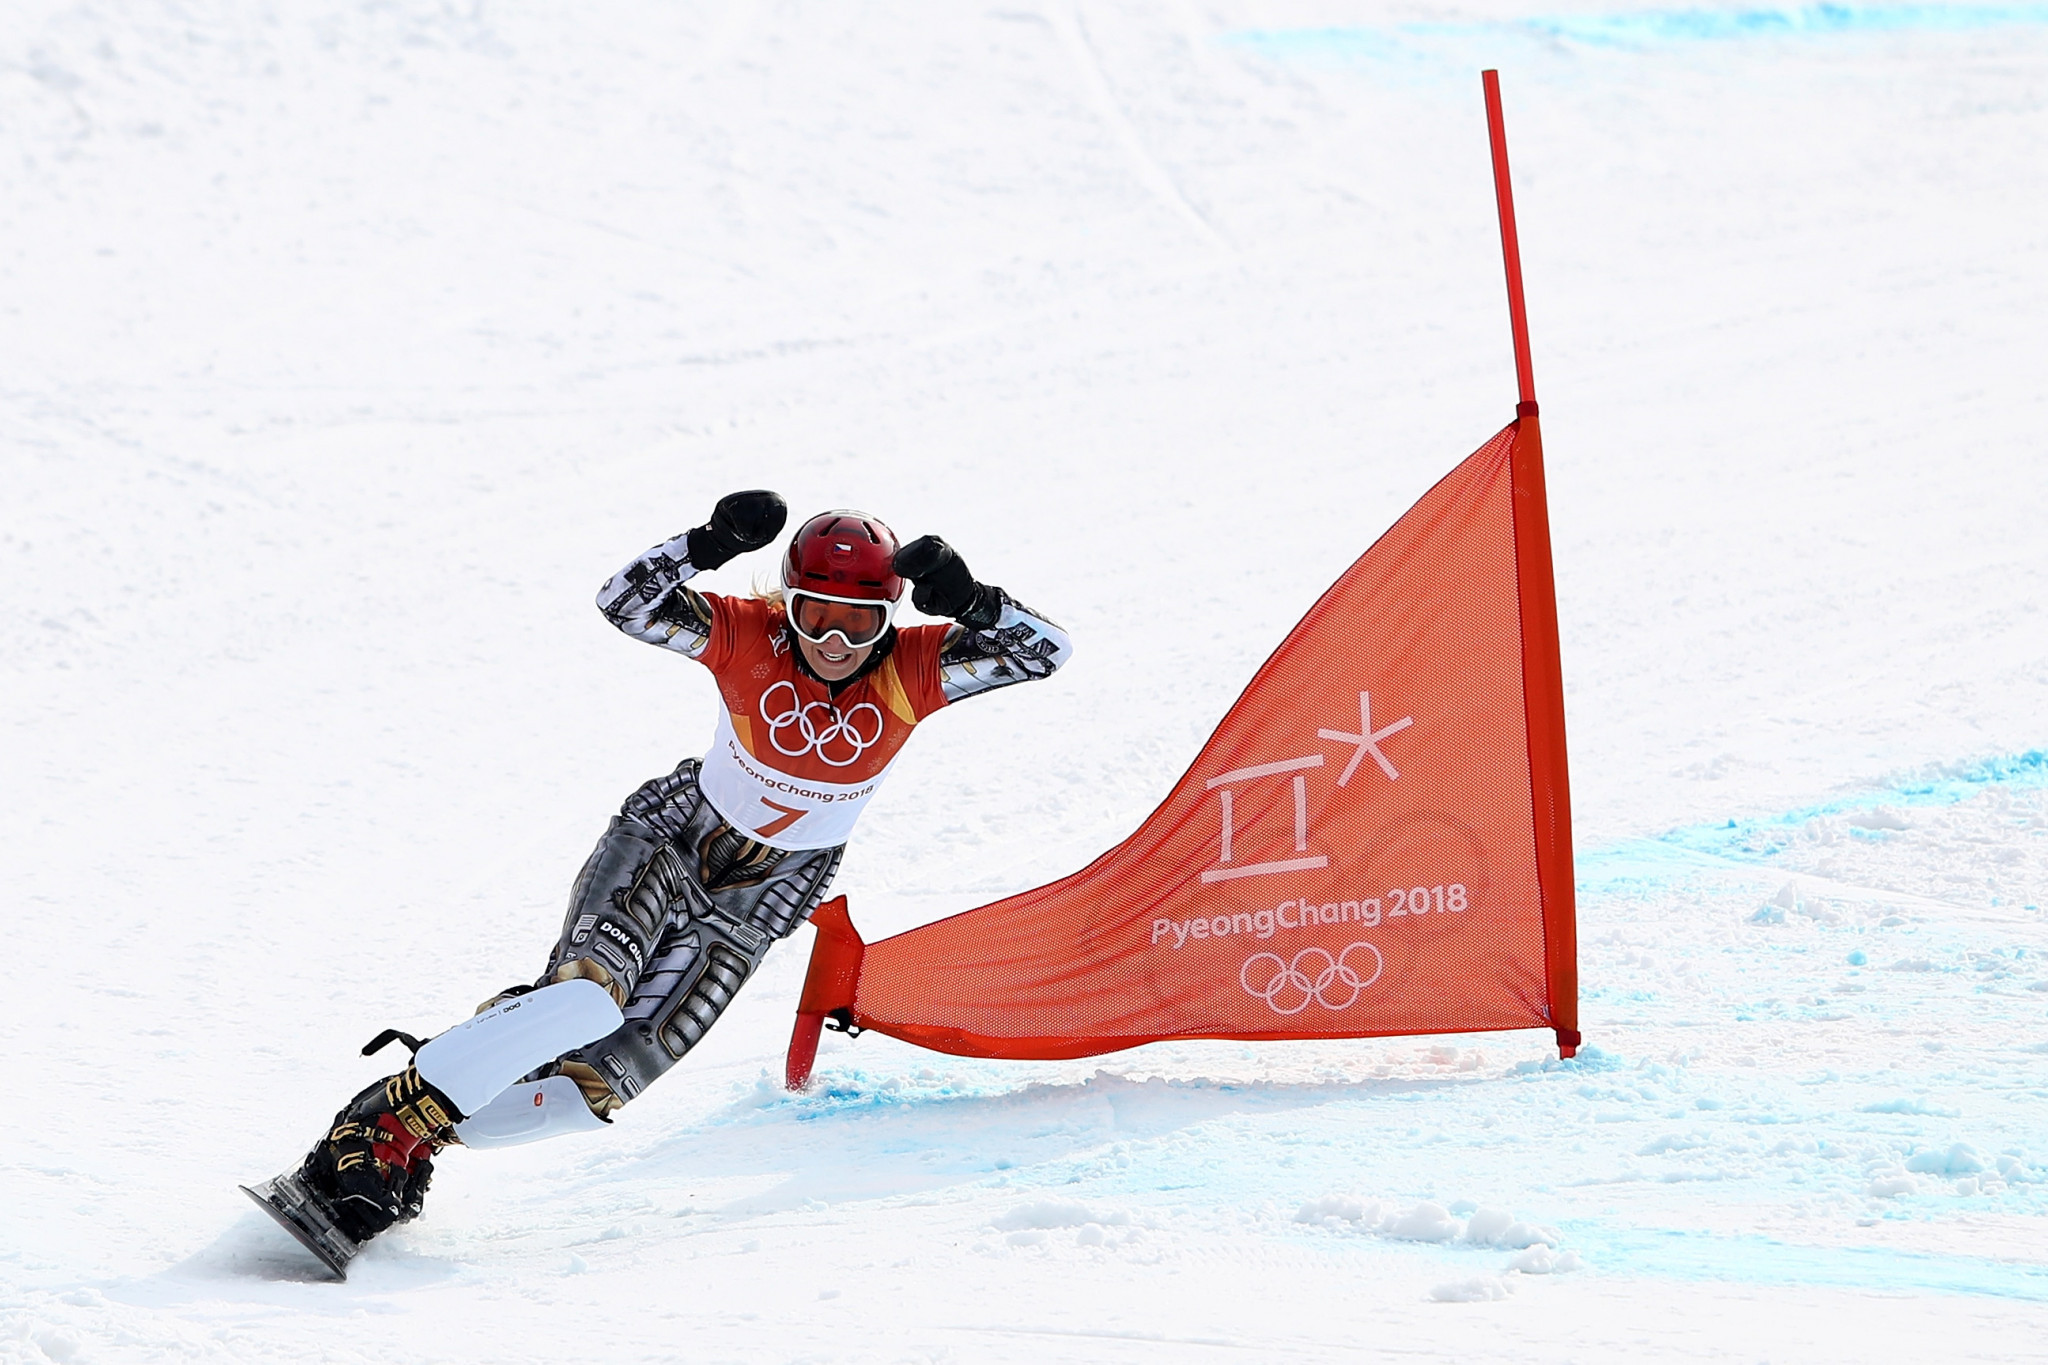 Gold in the parallel giant slalom snowboarding event at the 2011 Winter European Youth Olympic Festival in her native Czech Republic sent Ester Ledecká on her way to a historic Olympic double victory at Pyeongchang 2018 ©Getty Images